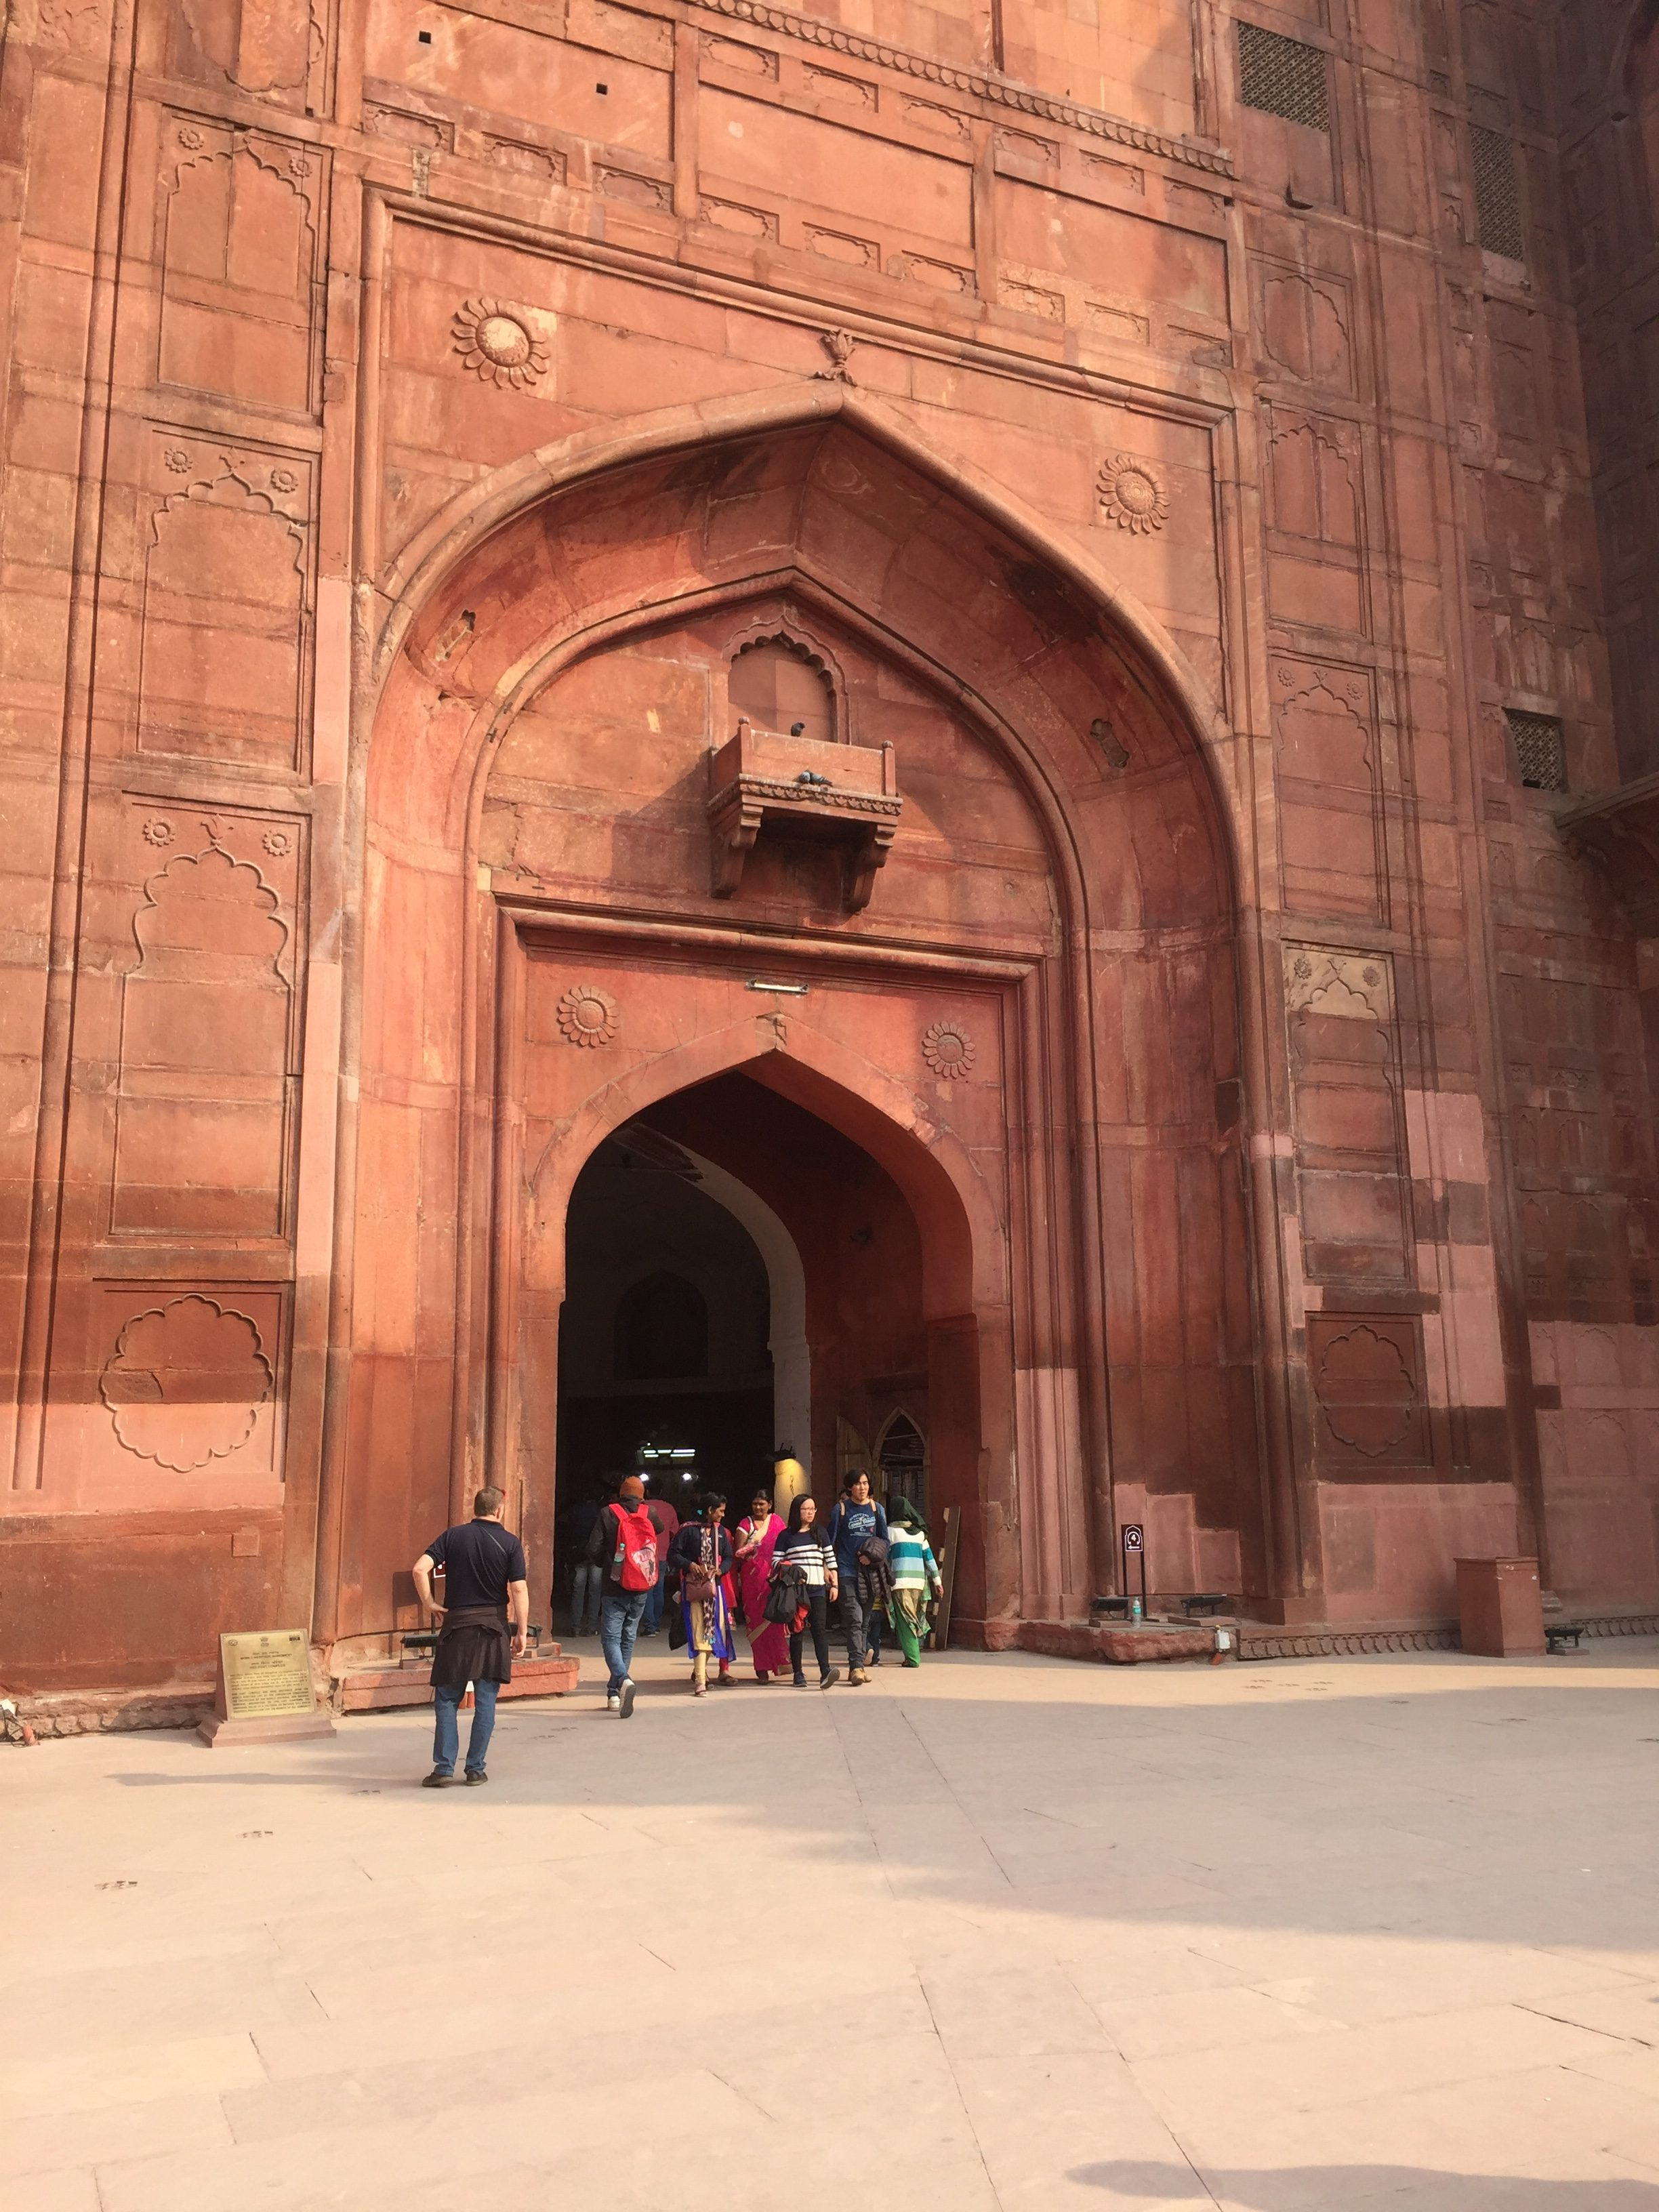 The Red Fort or Lal Qila